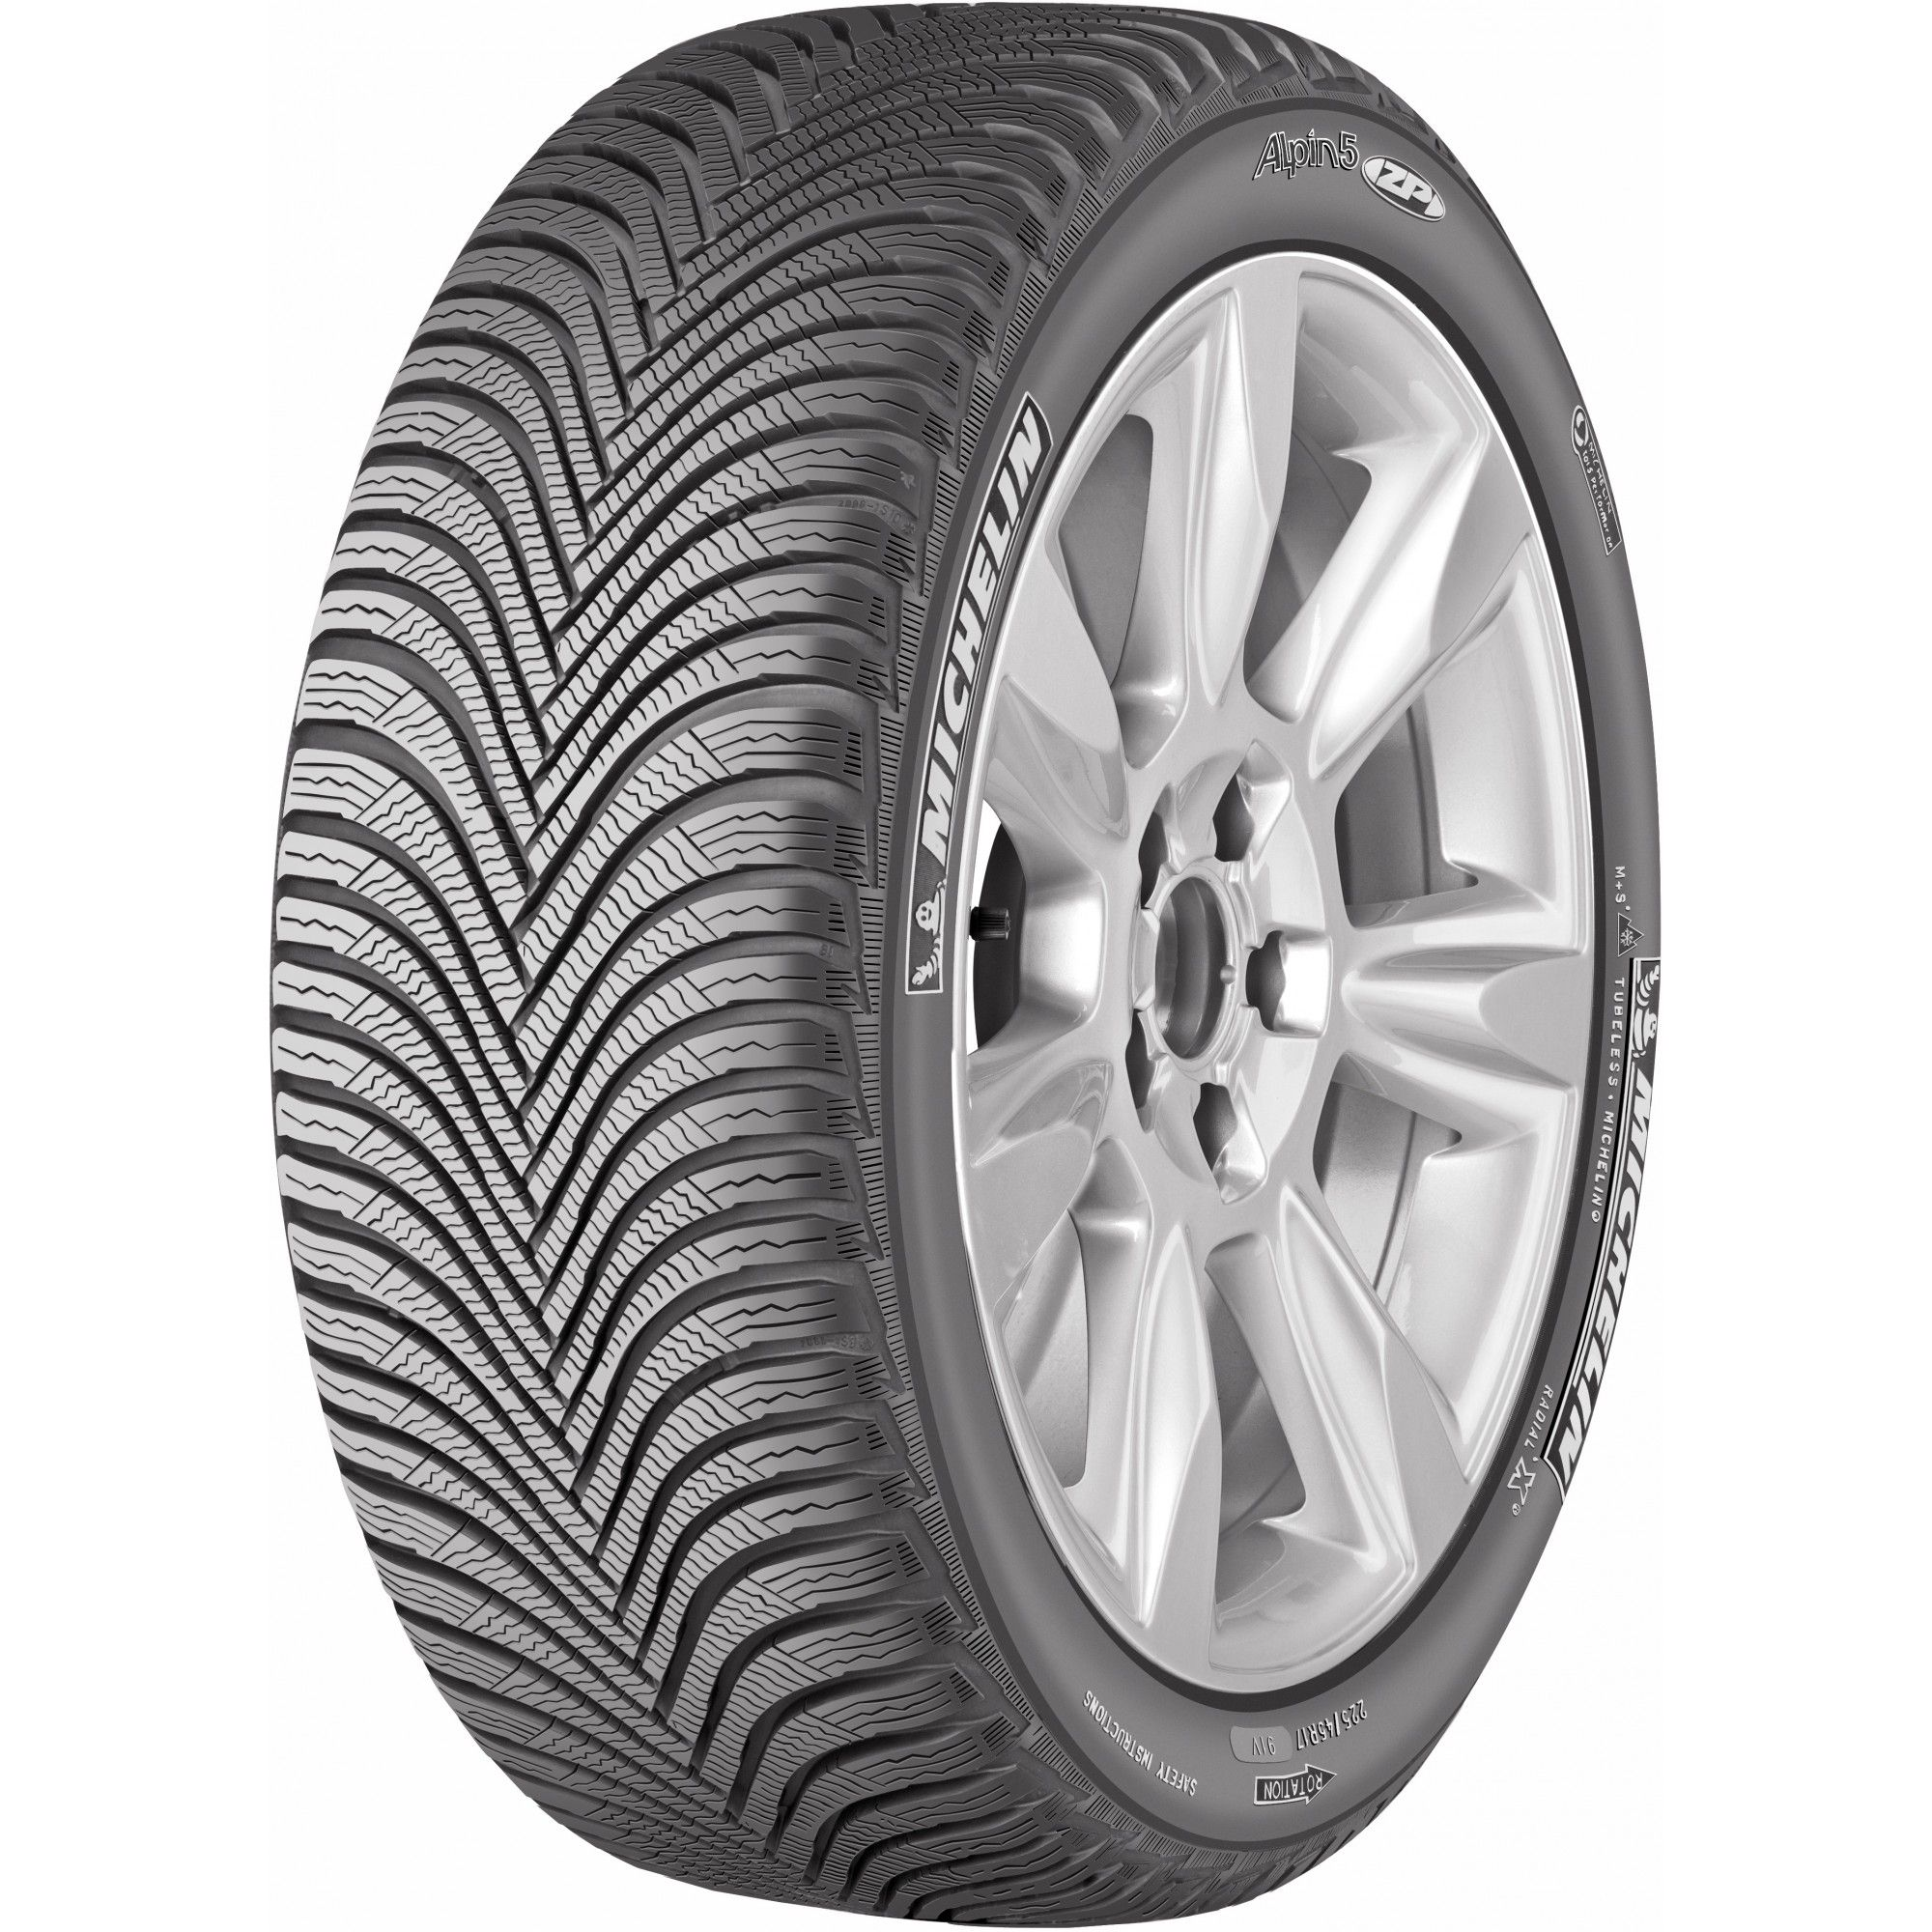 Зимняя шина Michelin Alpin 5 205/50 R17 89V RF